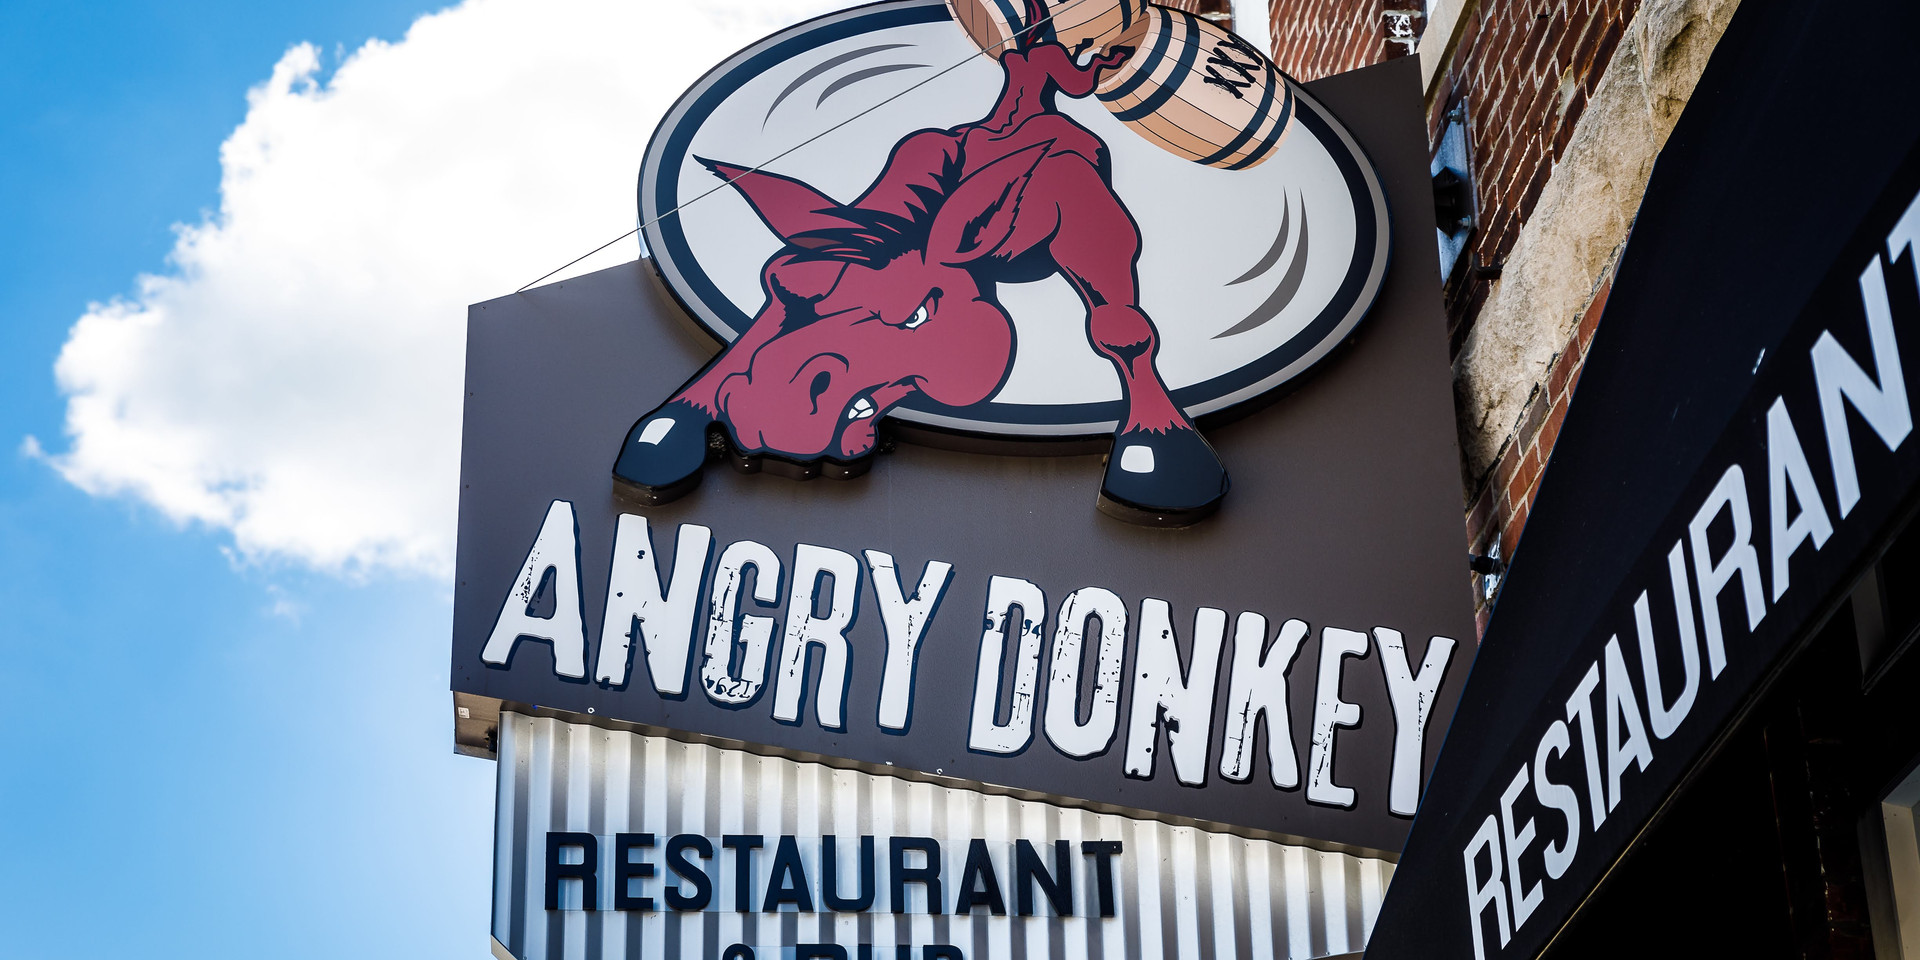 welcome to the Angry Donkey